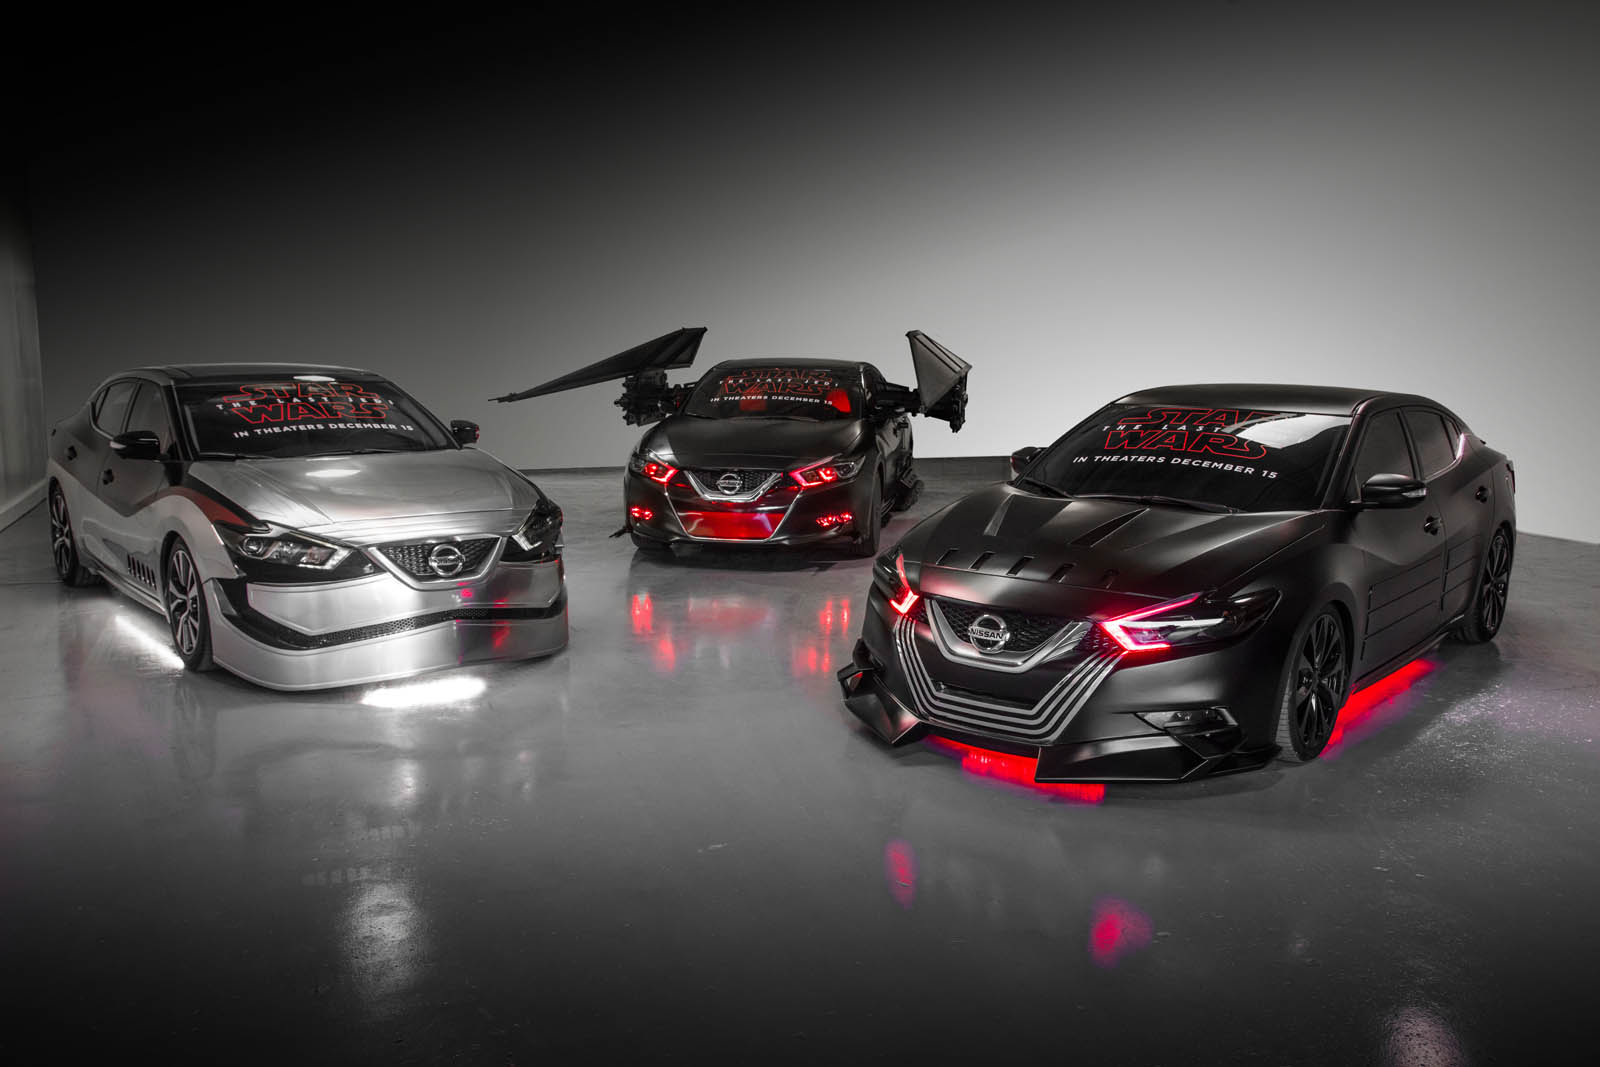 Nissan unveiled six Star Wars-themed show vehicles at the Los Angeles Auto Show in celebration of the brand's ongoing collaboration with Lucasfilm for Star Wars: The Last Jedi..